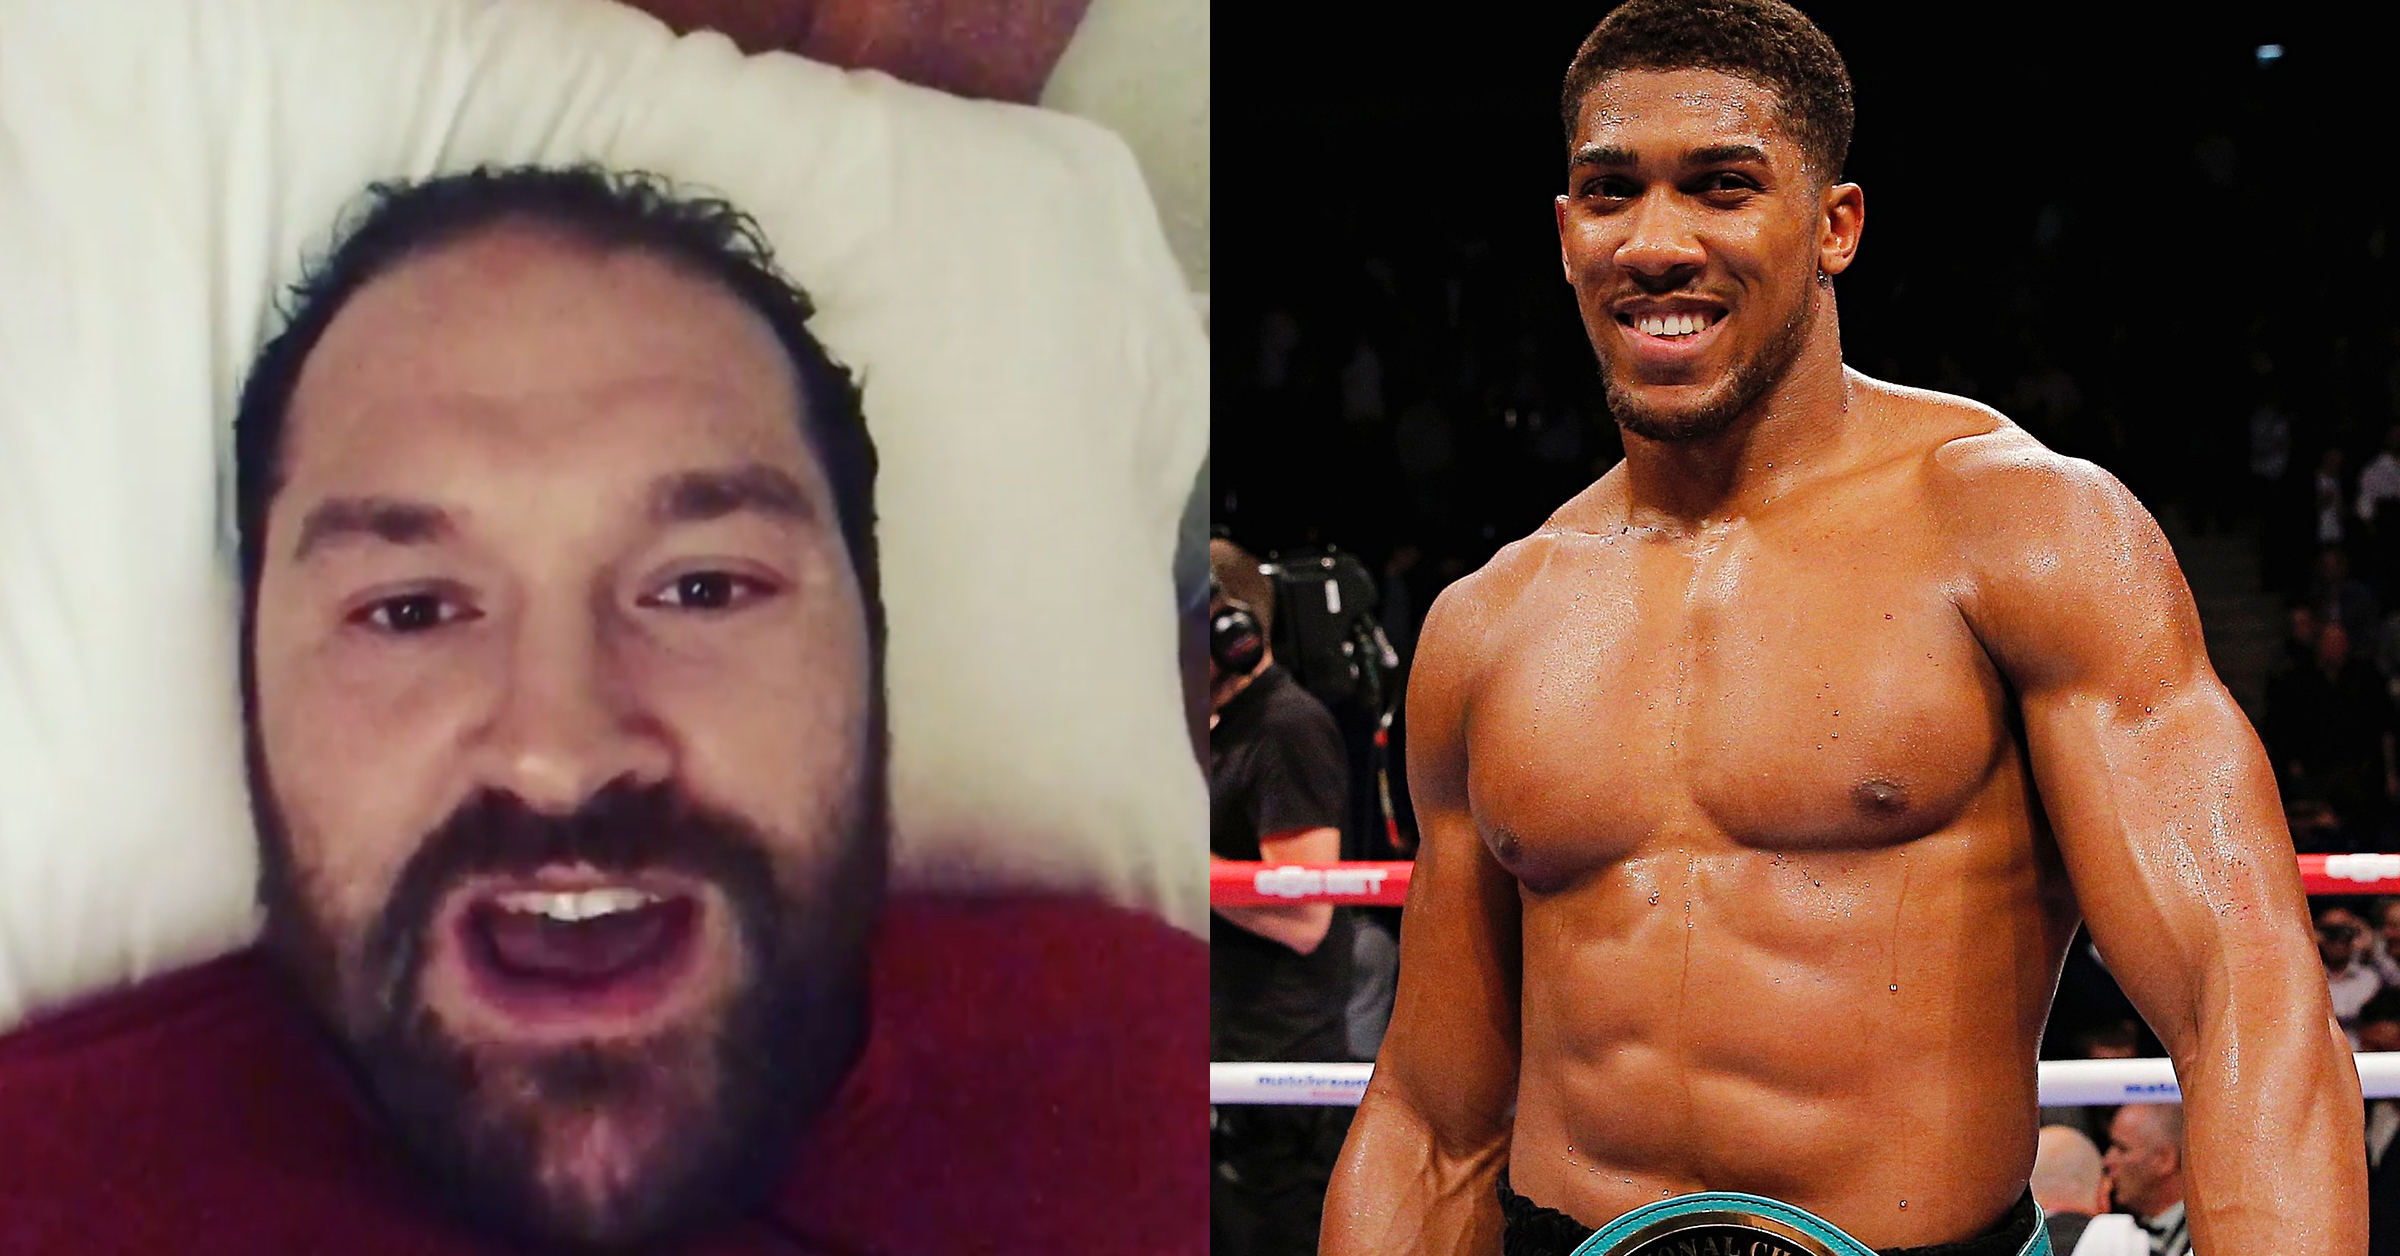 WATCH: Tyson Fury Wishes Anthony Joshua Luck & Then Calls Him Out